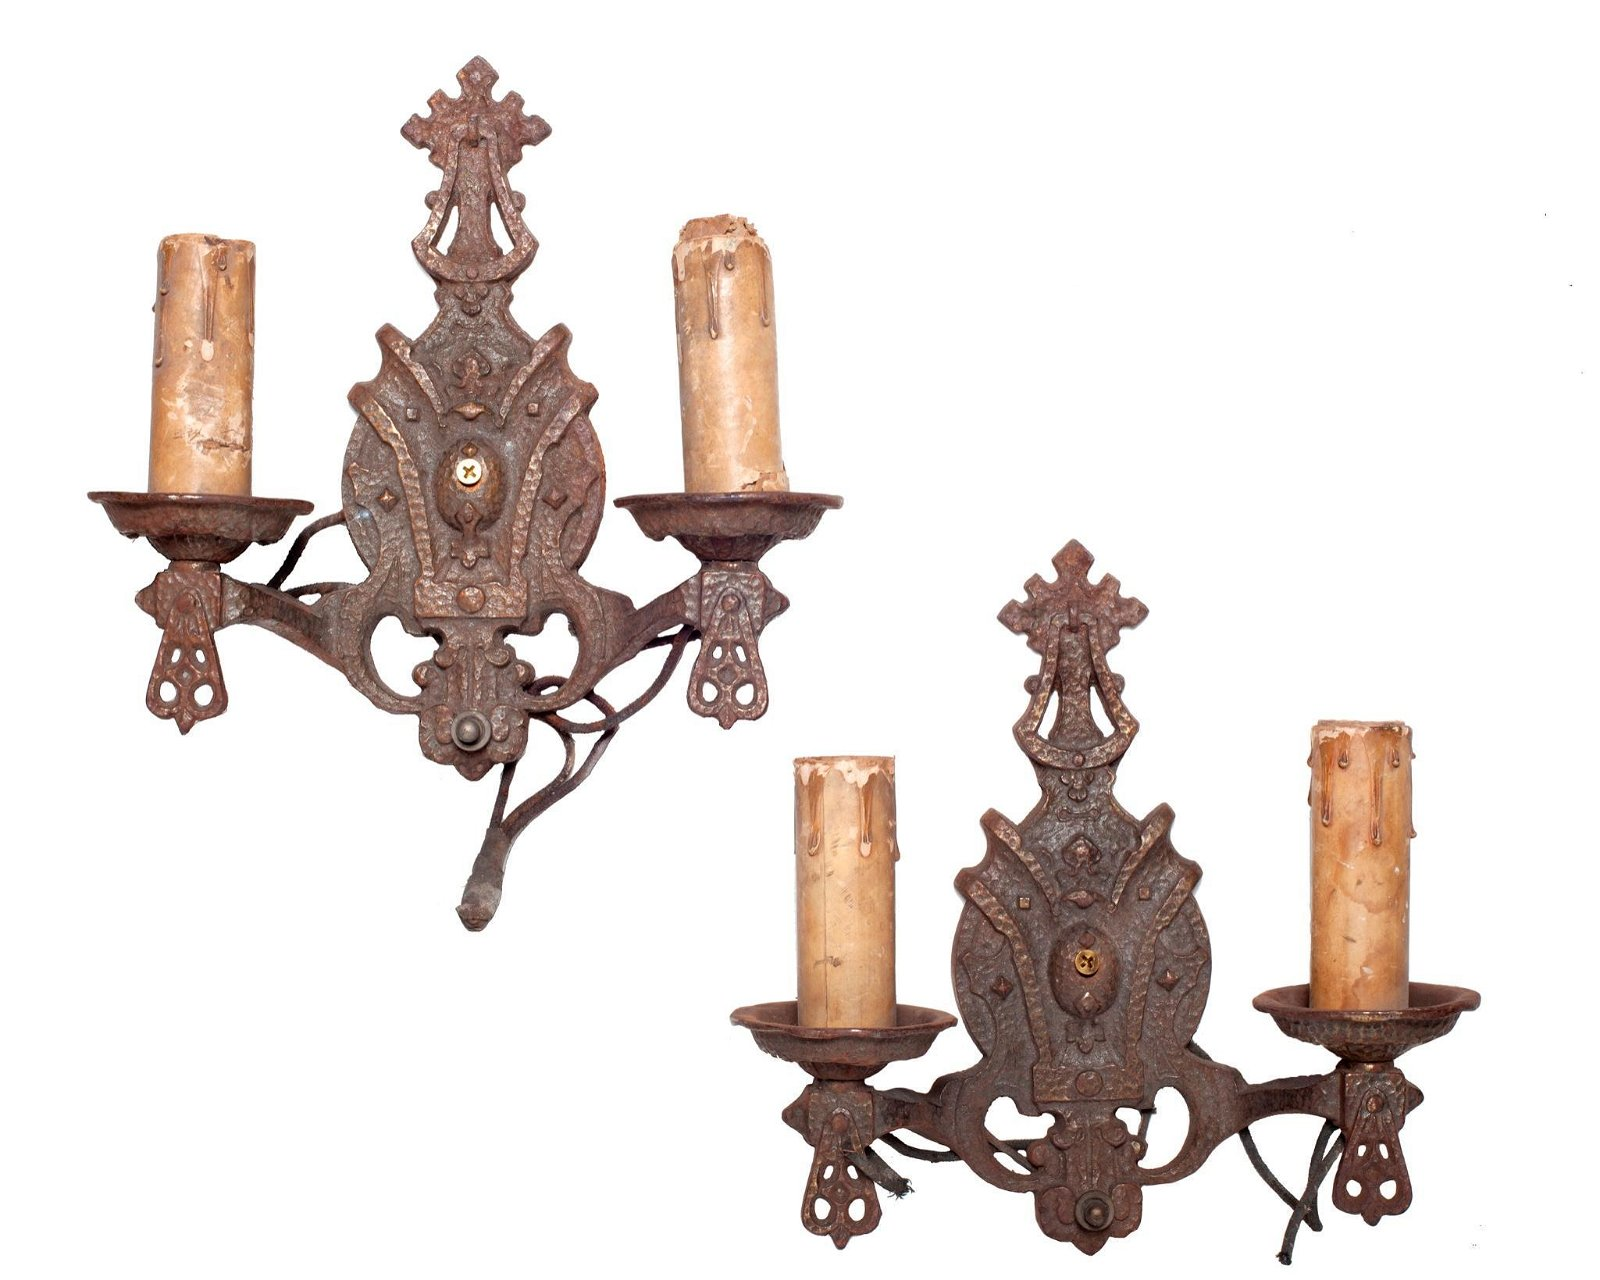 Pair of Spanish Style Gothic Revival Wall Sconces